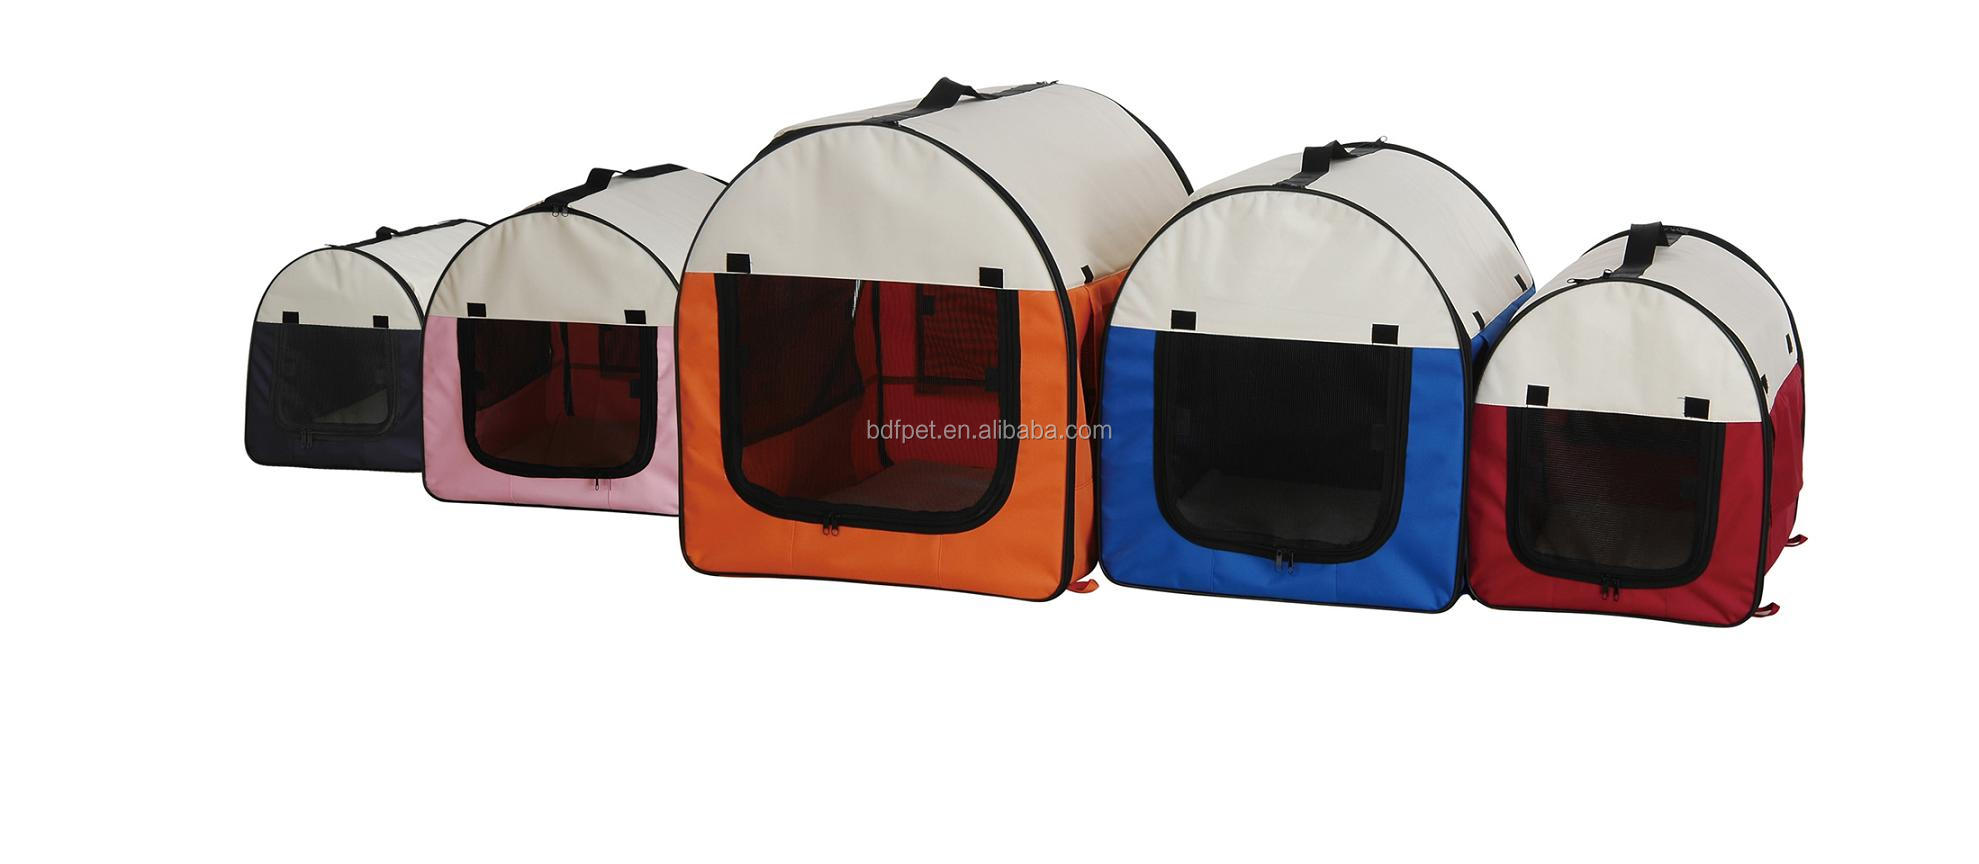 Eco-friendly Travel pet carrier dog bag Ventilated outdoor pet waterproof carrier